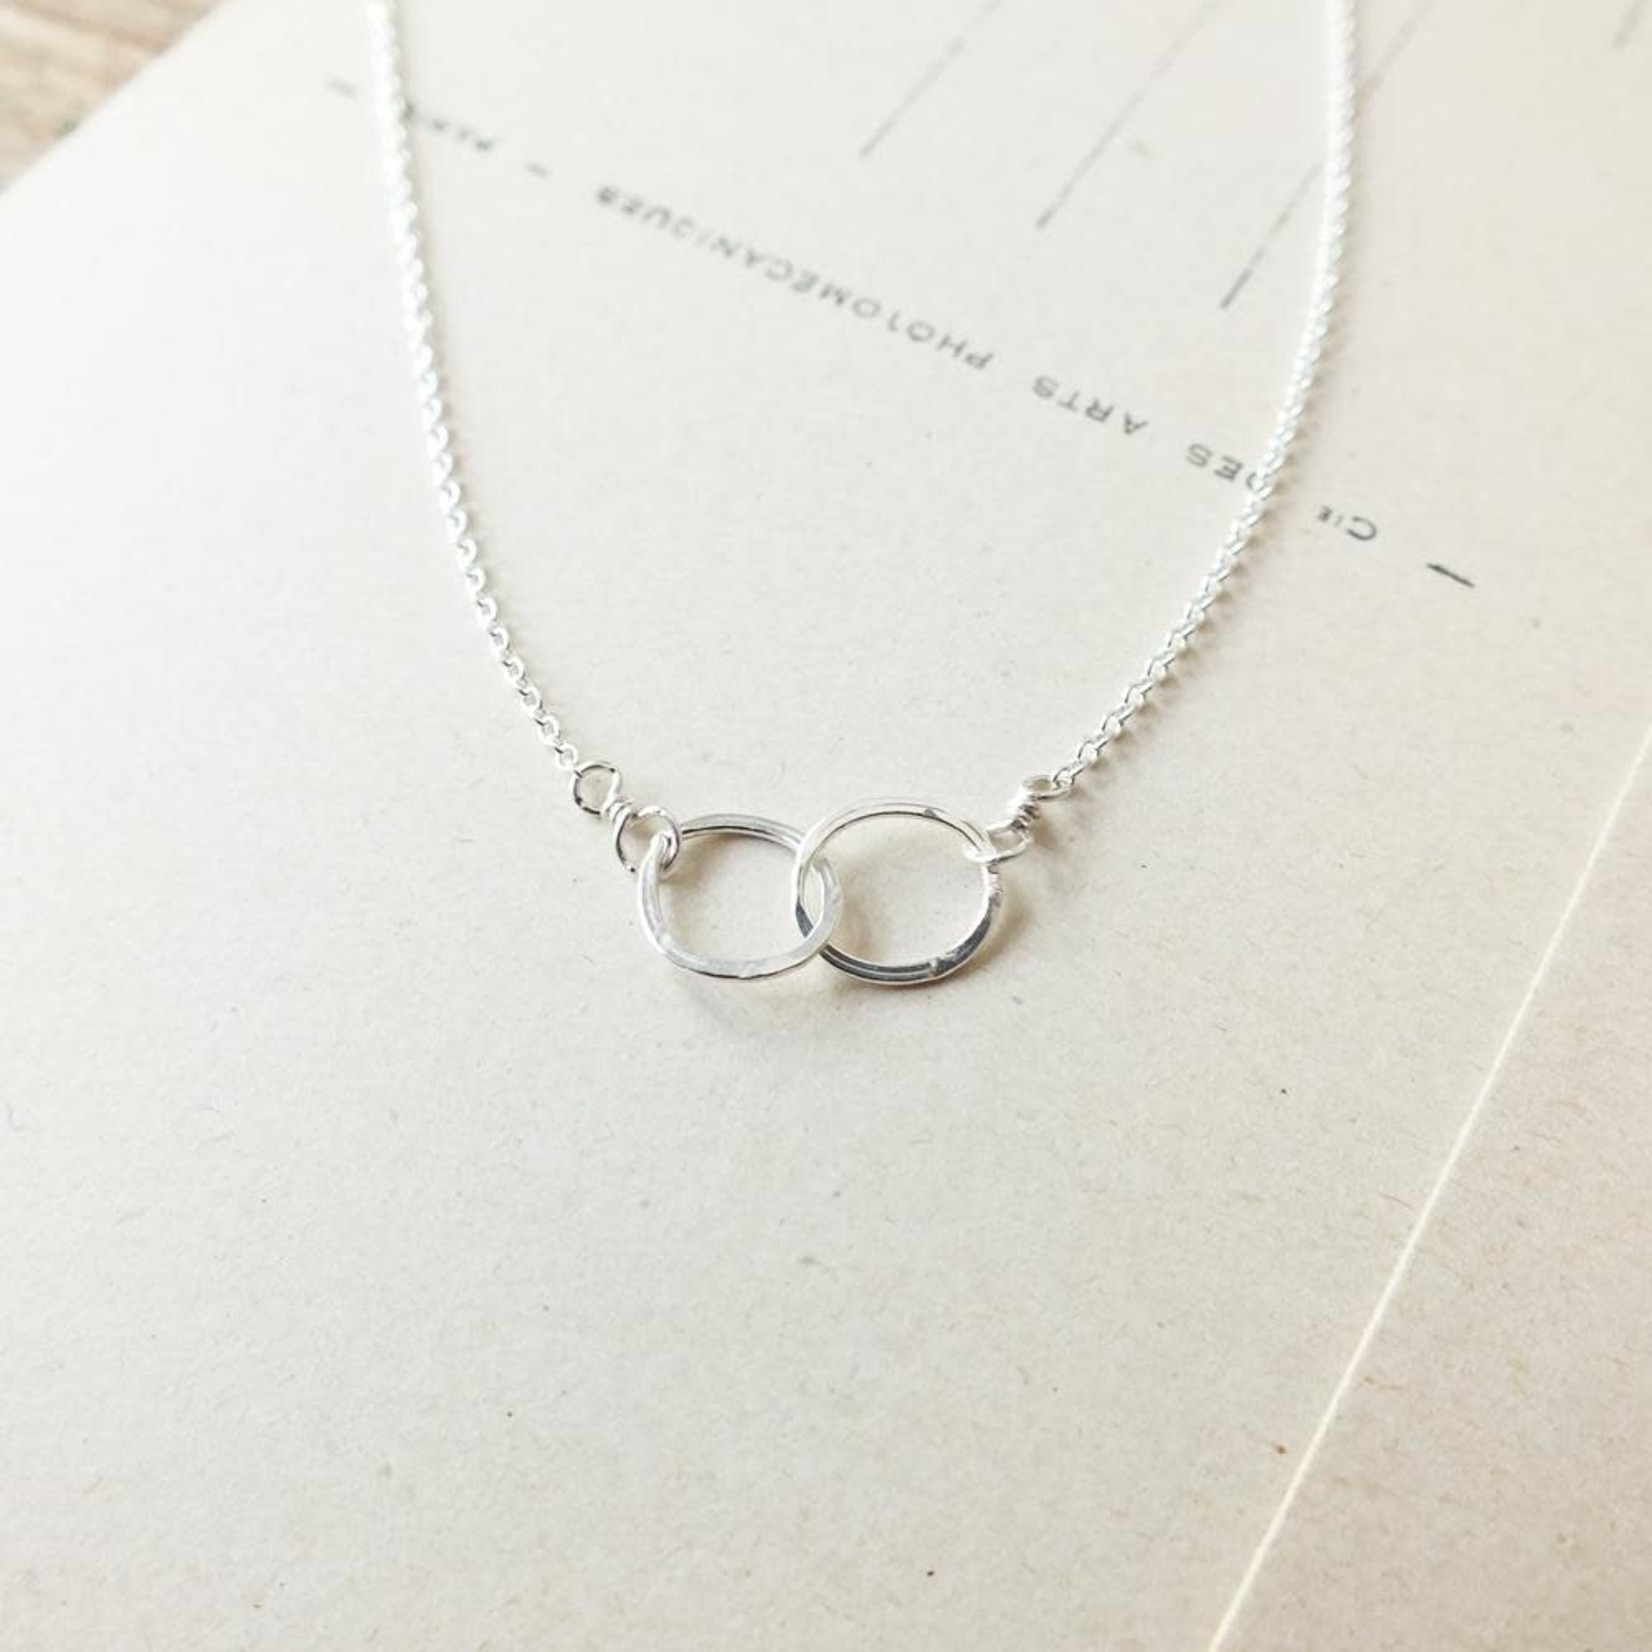 Becoming Jewelry Tiny Intertwined Circles Necklace, Silver